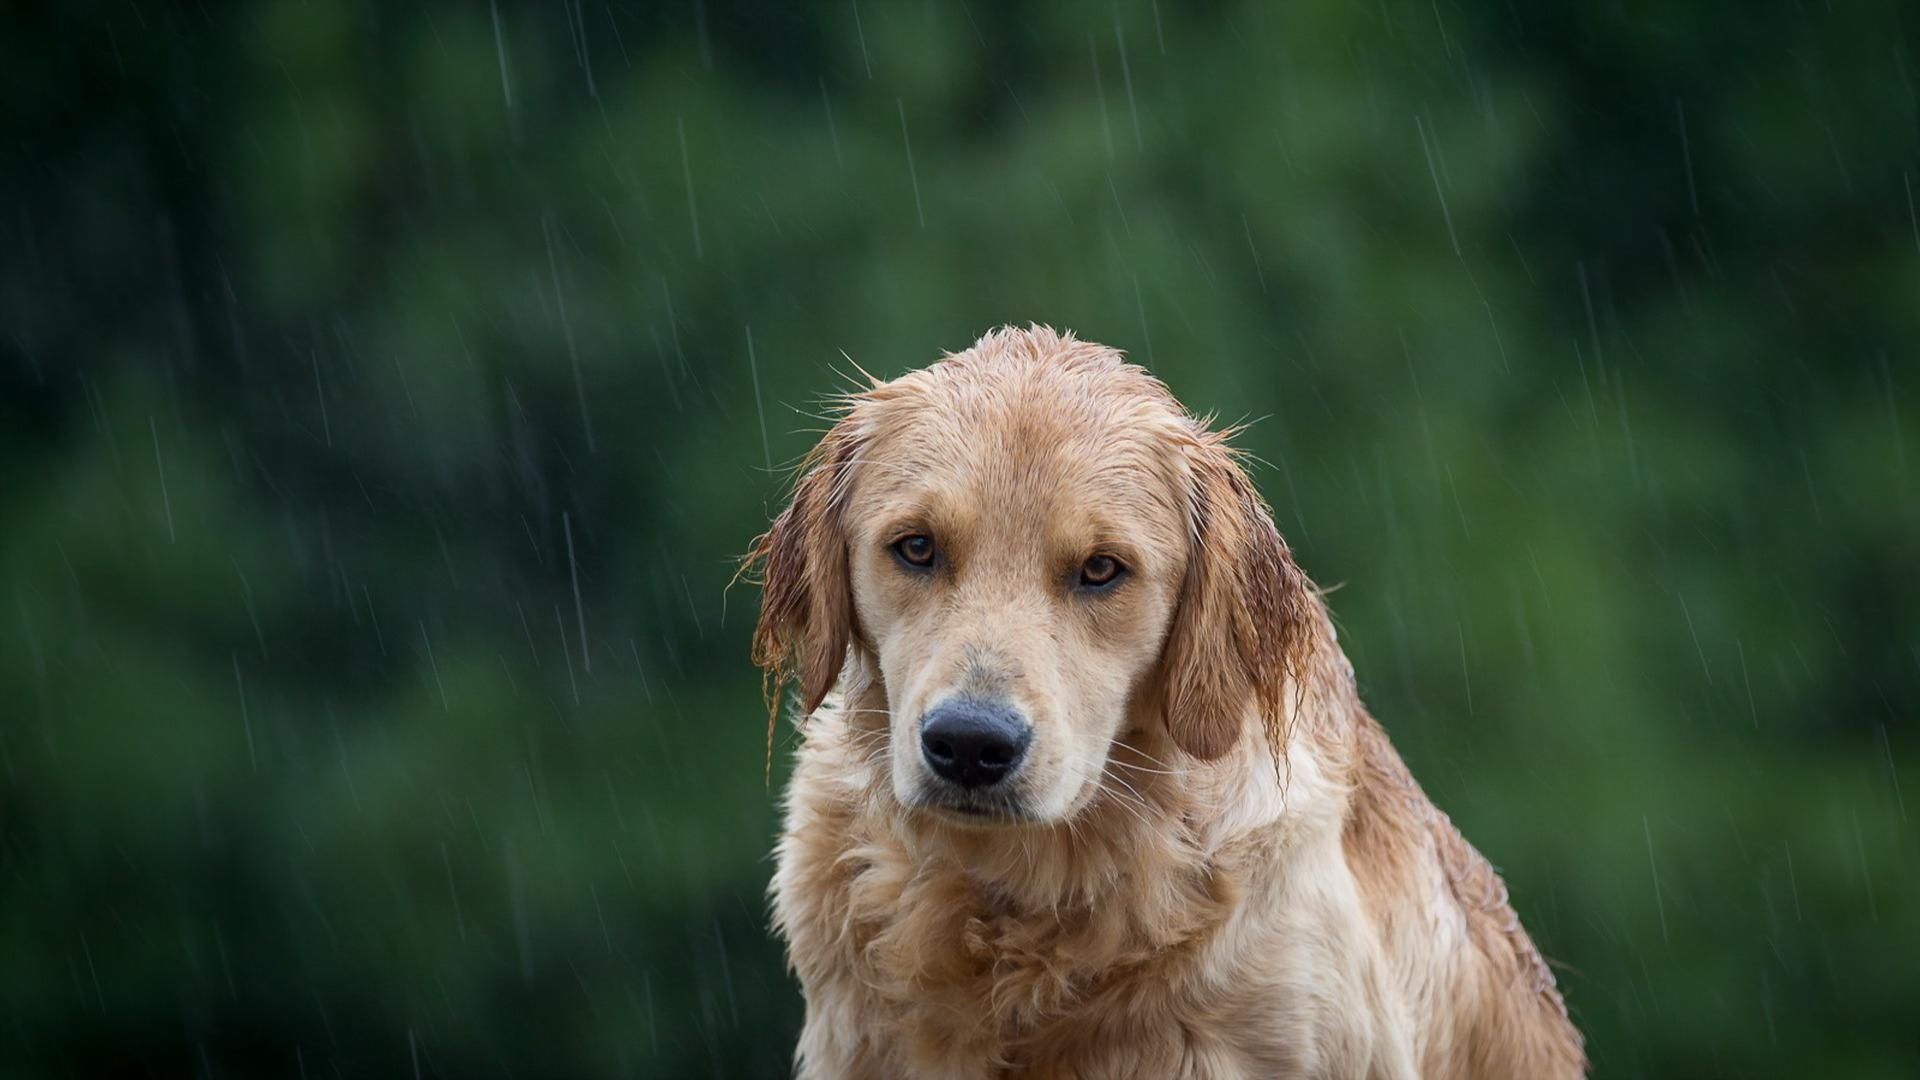 Golden Retriever Wallpapers 1920x1080 Full Hd 1080p Desktop